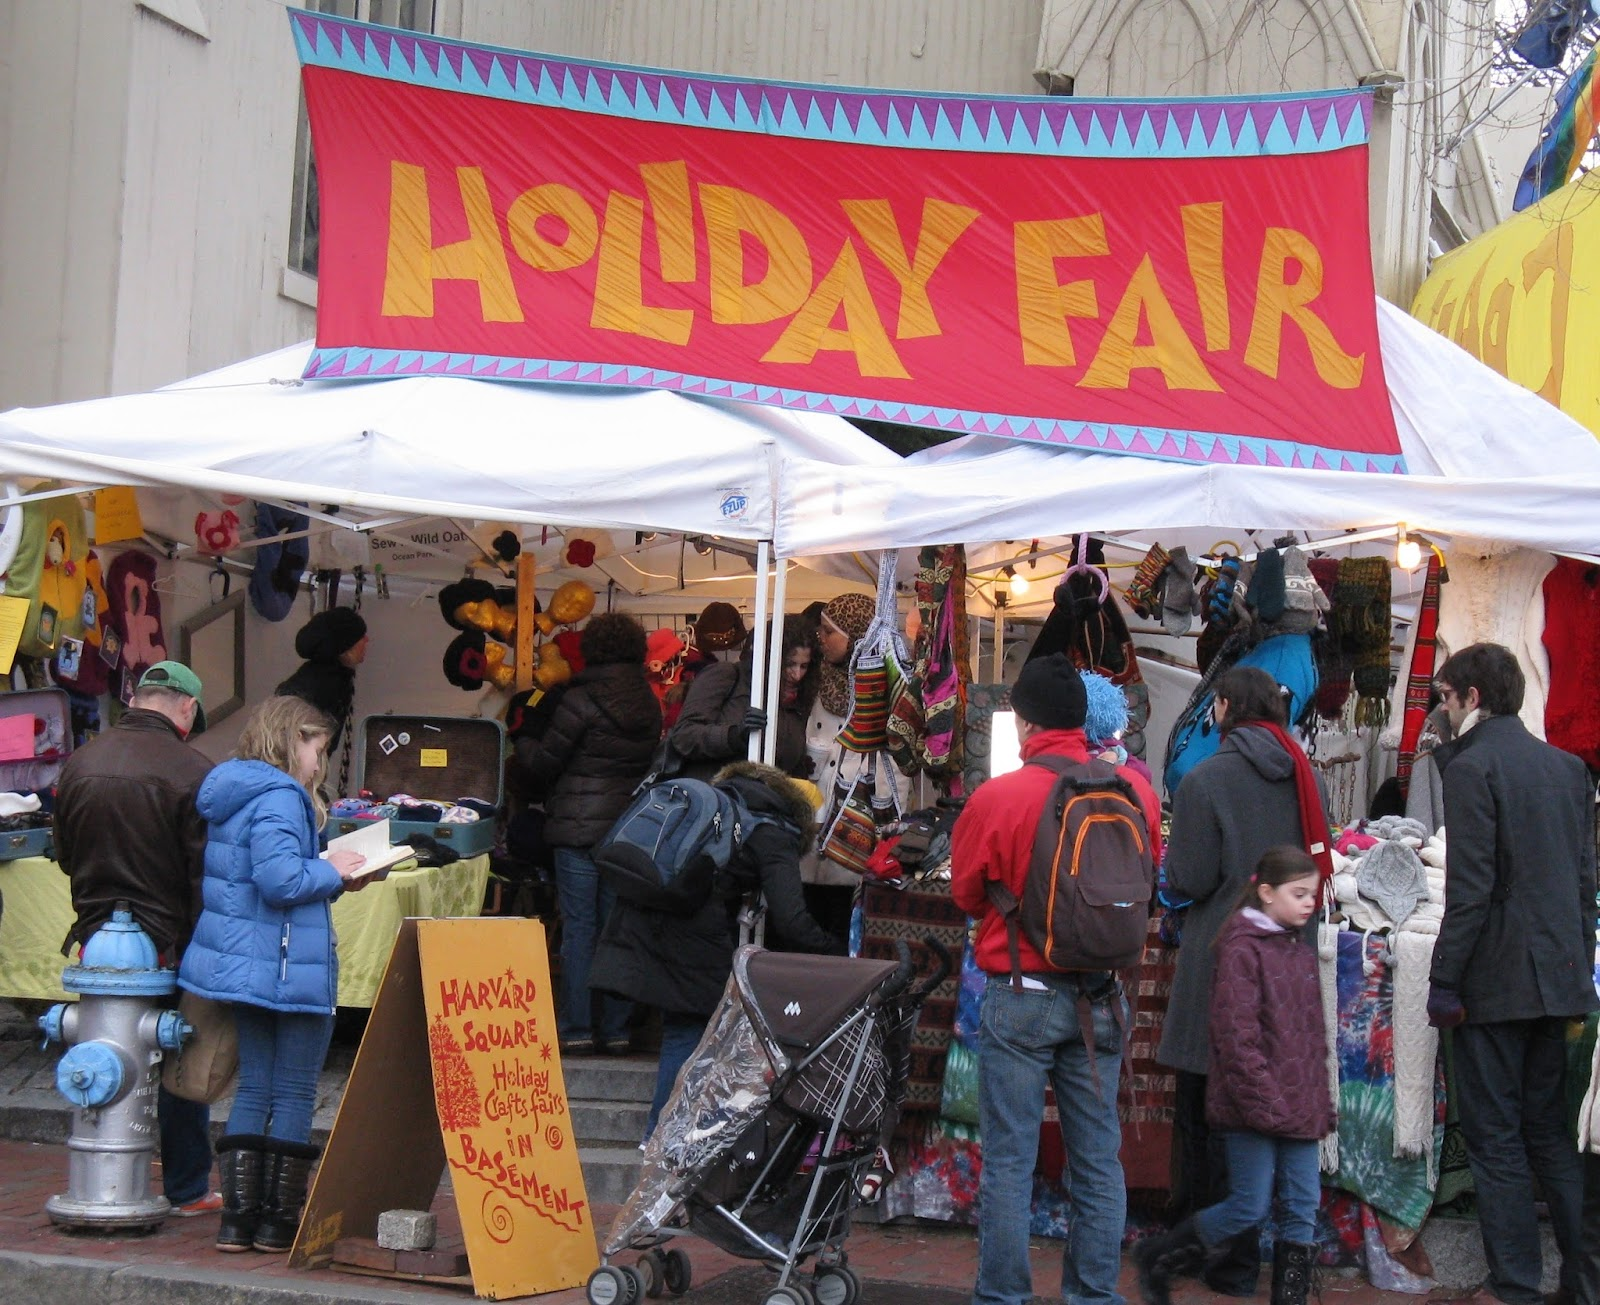 Harvard Square Holiday Fair